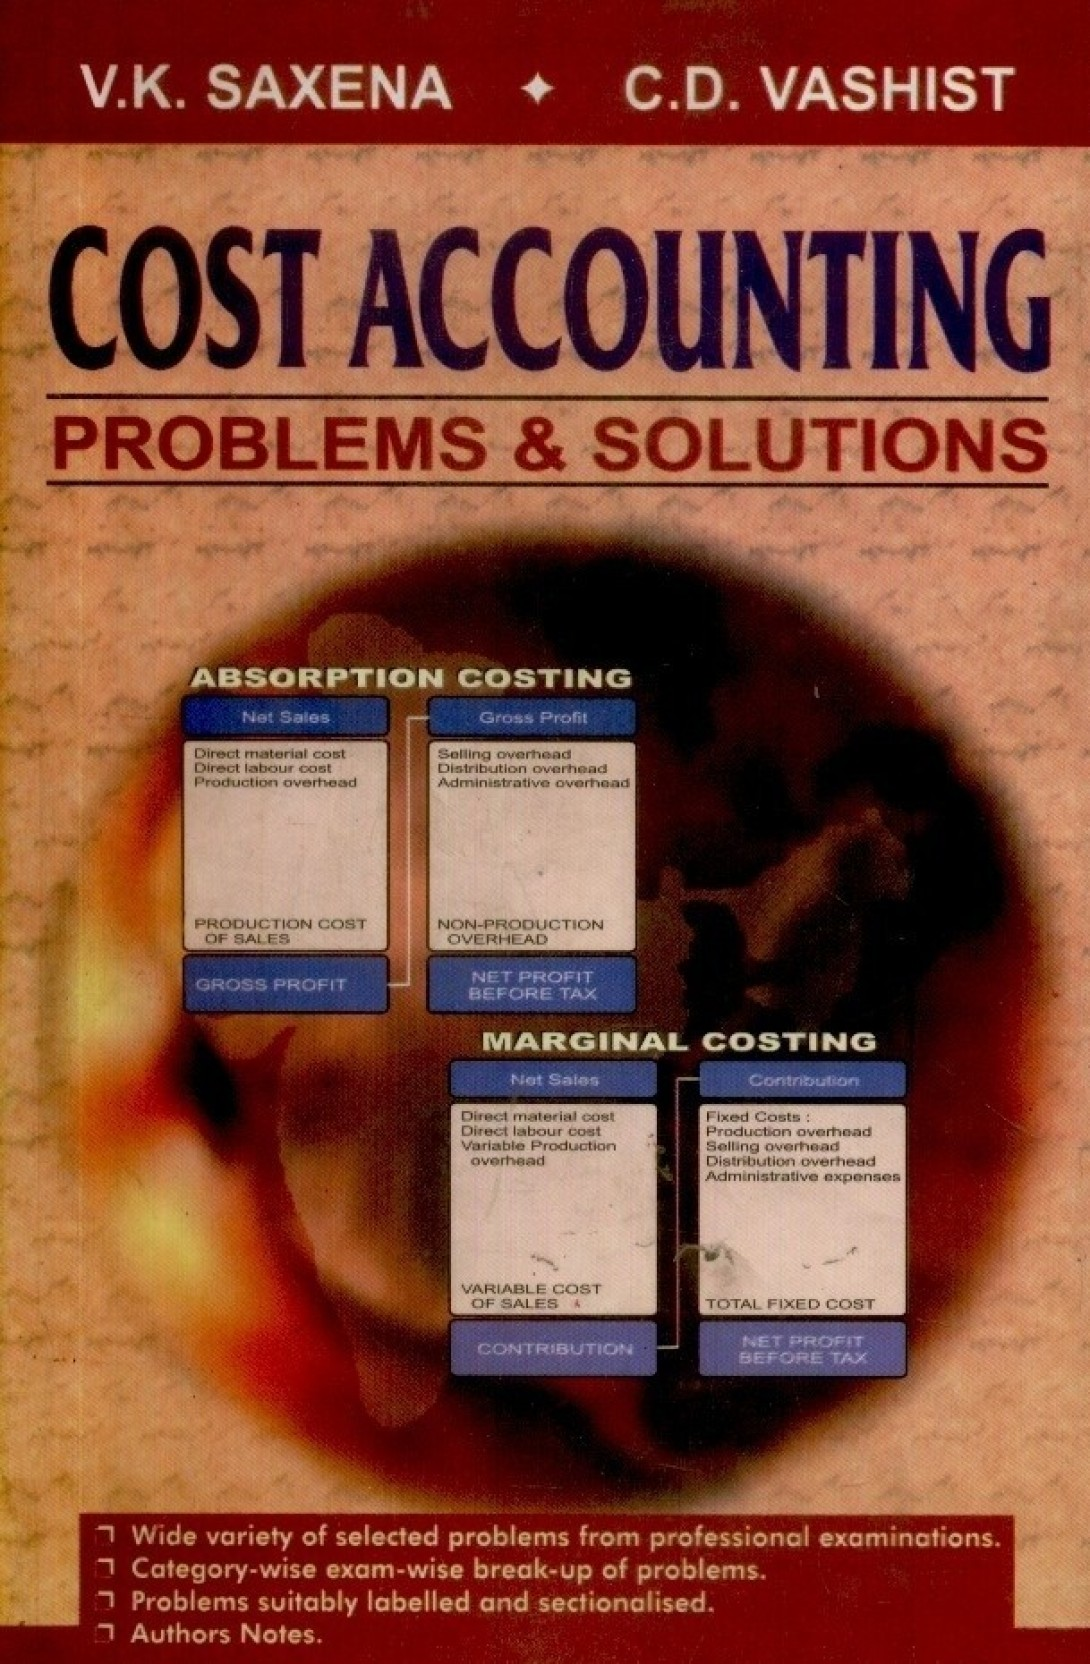 cost accounting problems and solutions book pdf